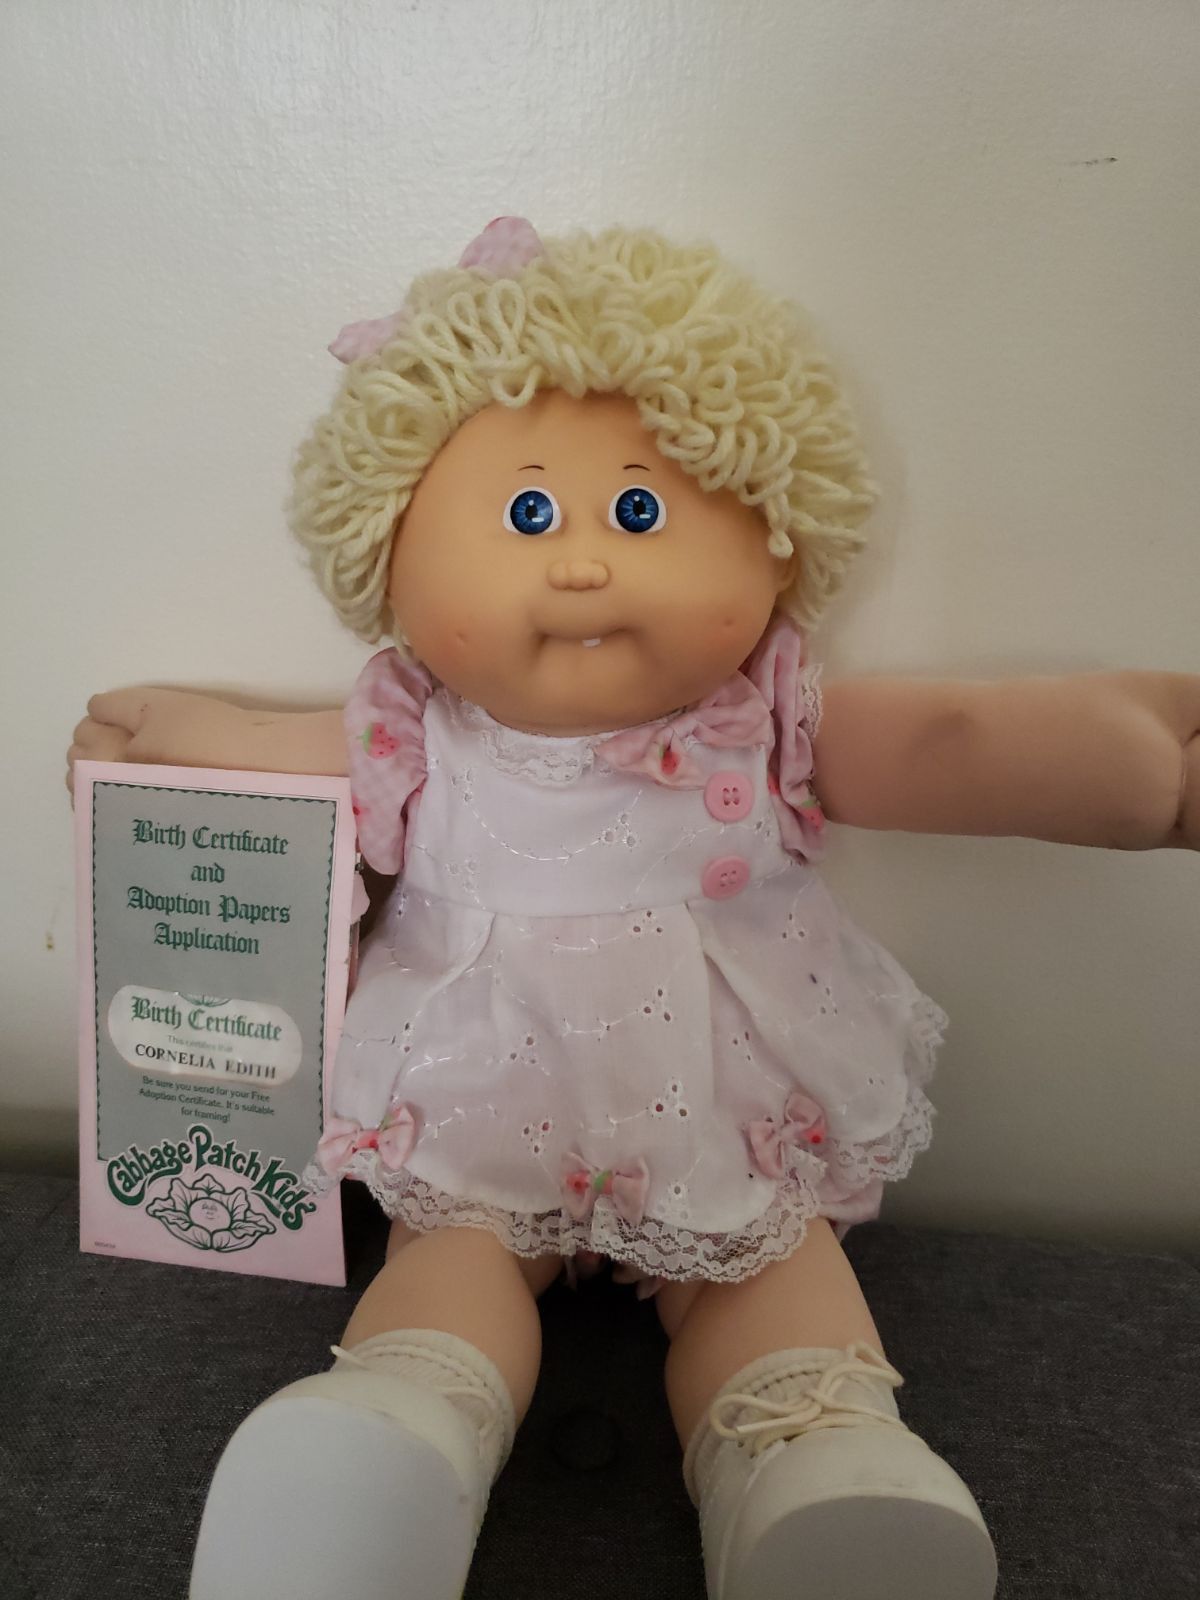 Retro 1986 Cabbage Patch Doll Her Name Is Cornelia Edith Have 3 Clean Outfits Papers Shoes Cabbage Patch Dolls Cabbage Patch Kids Dolls Cabbage Patch Kids